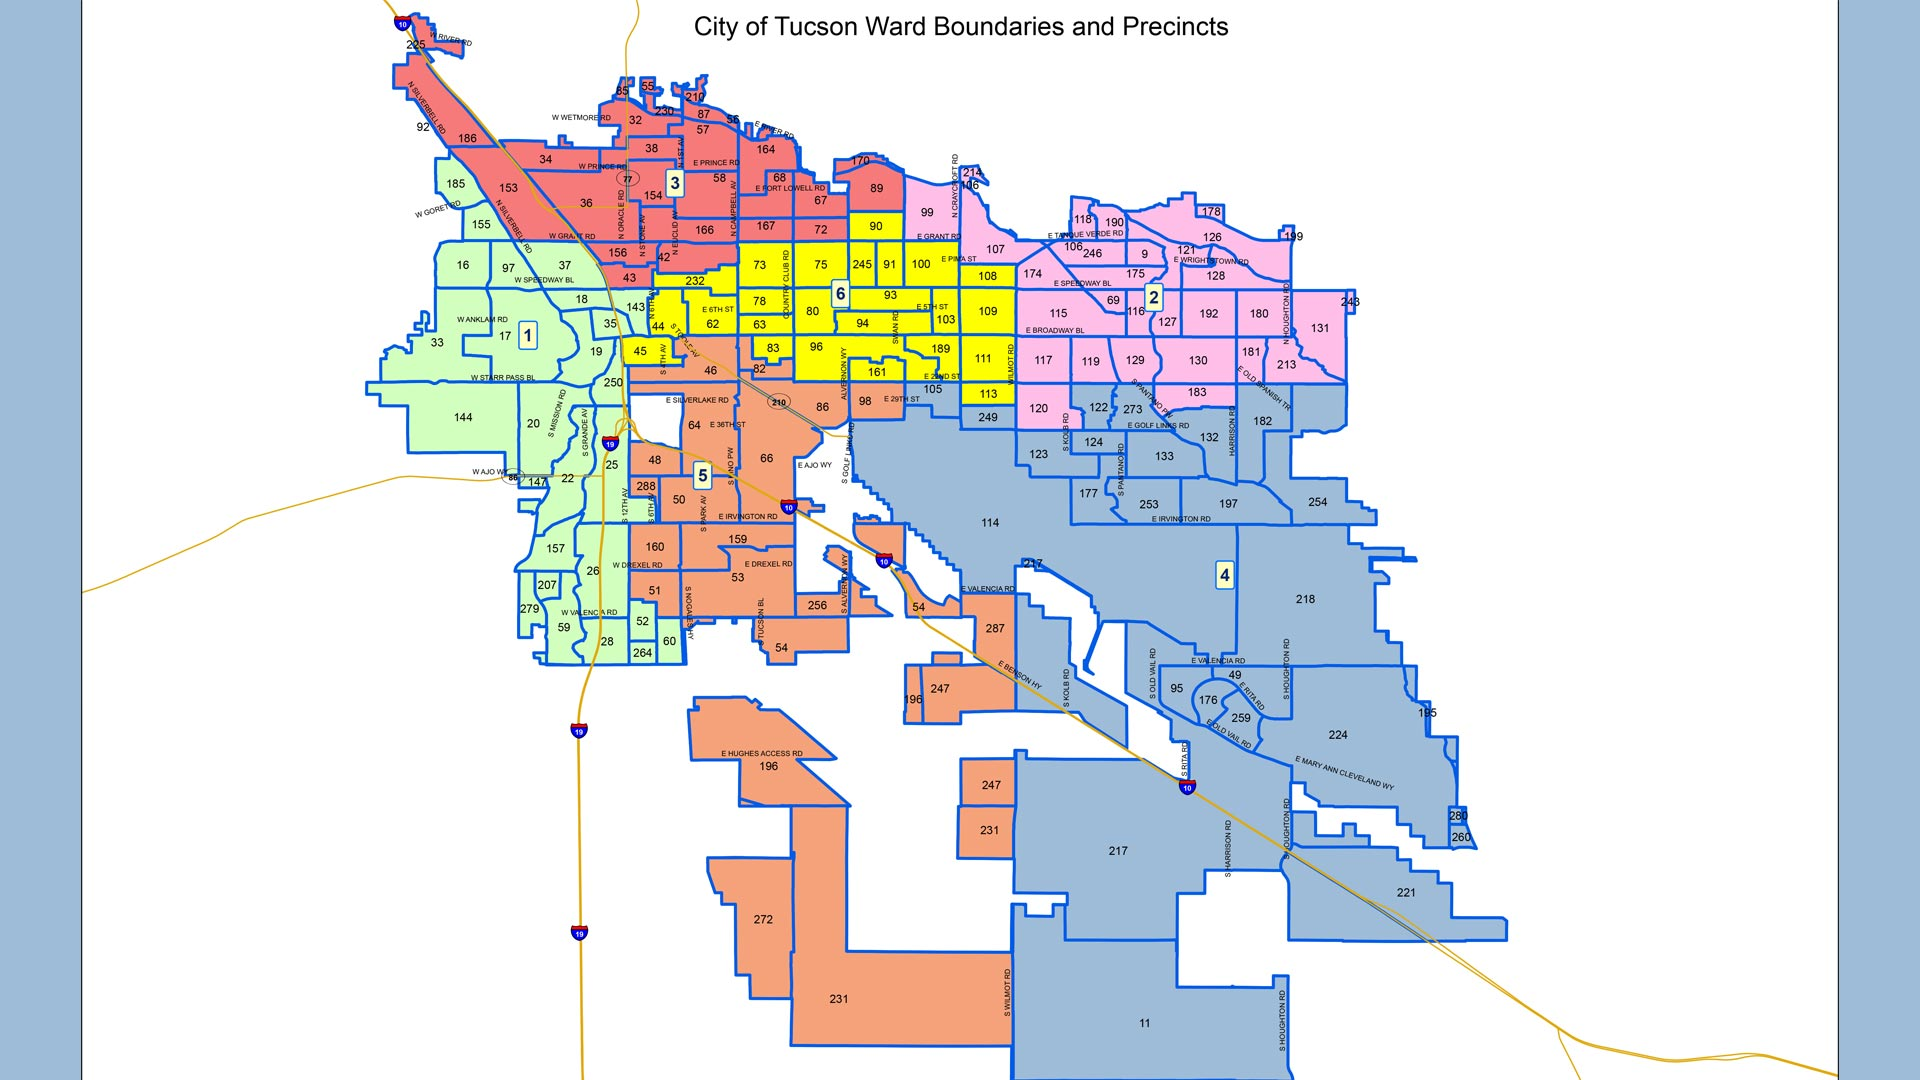 City of Tucson ward boundaries and precincts.